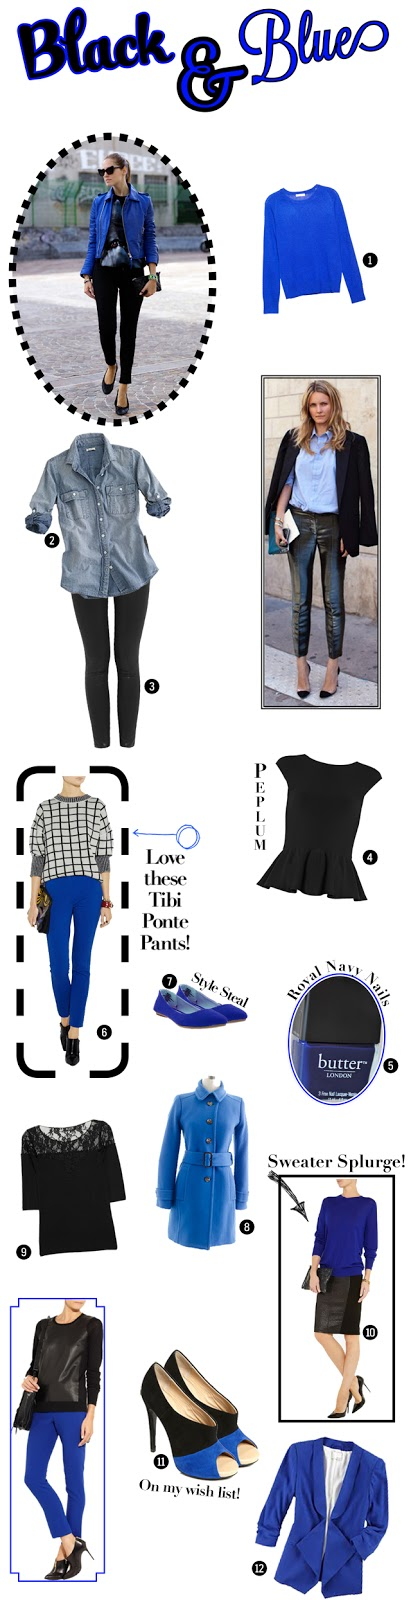 Fall Fashion Trends, Black and Blue